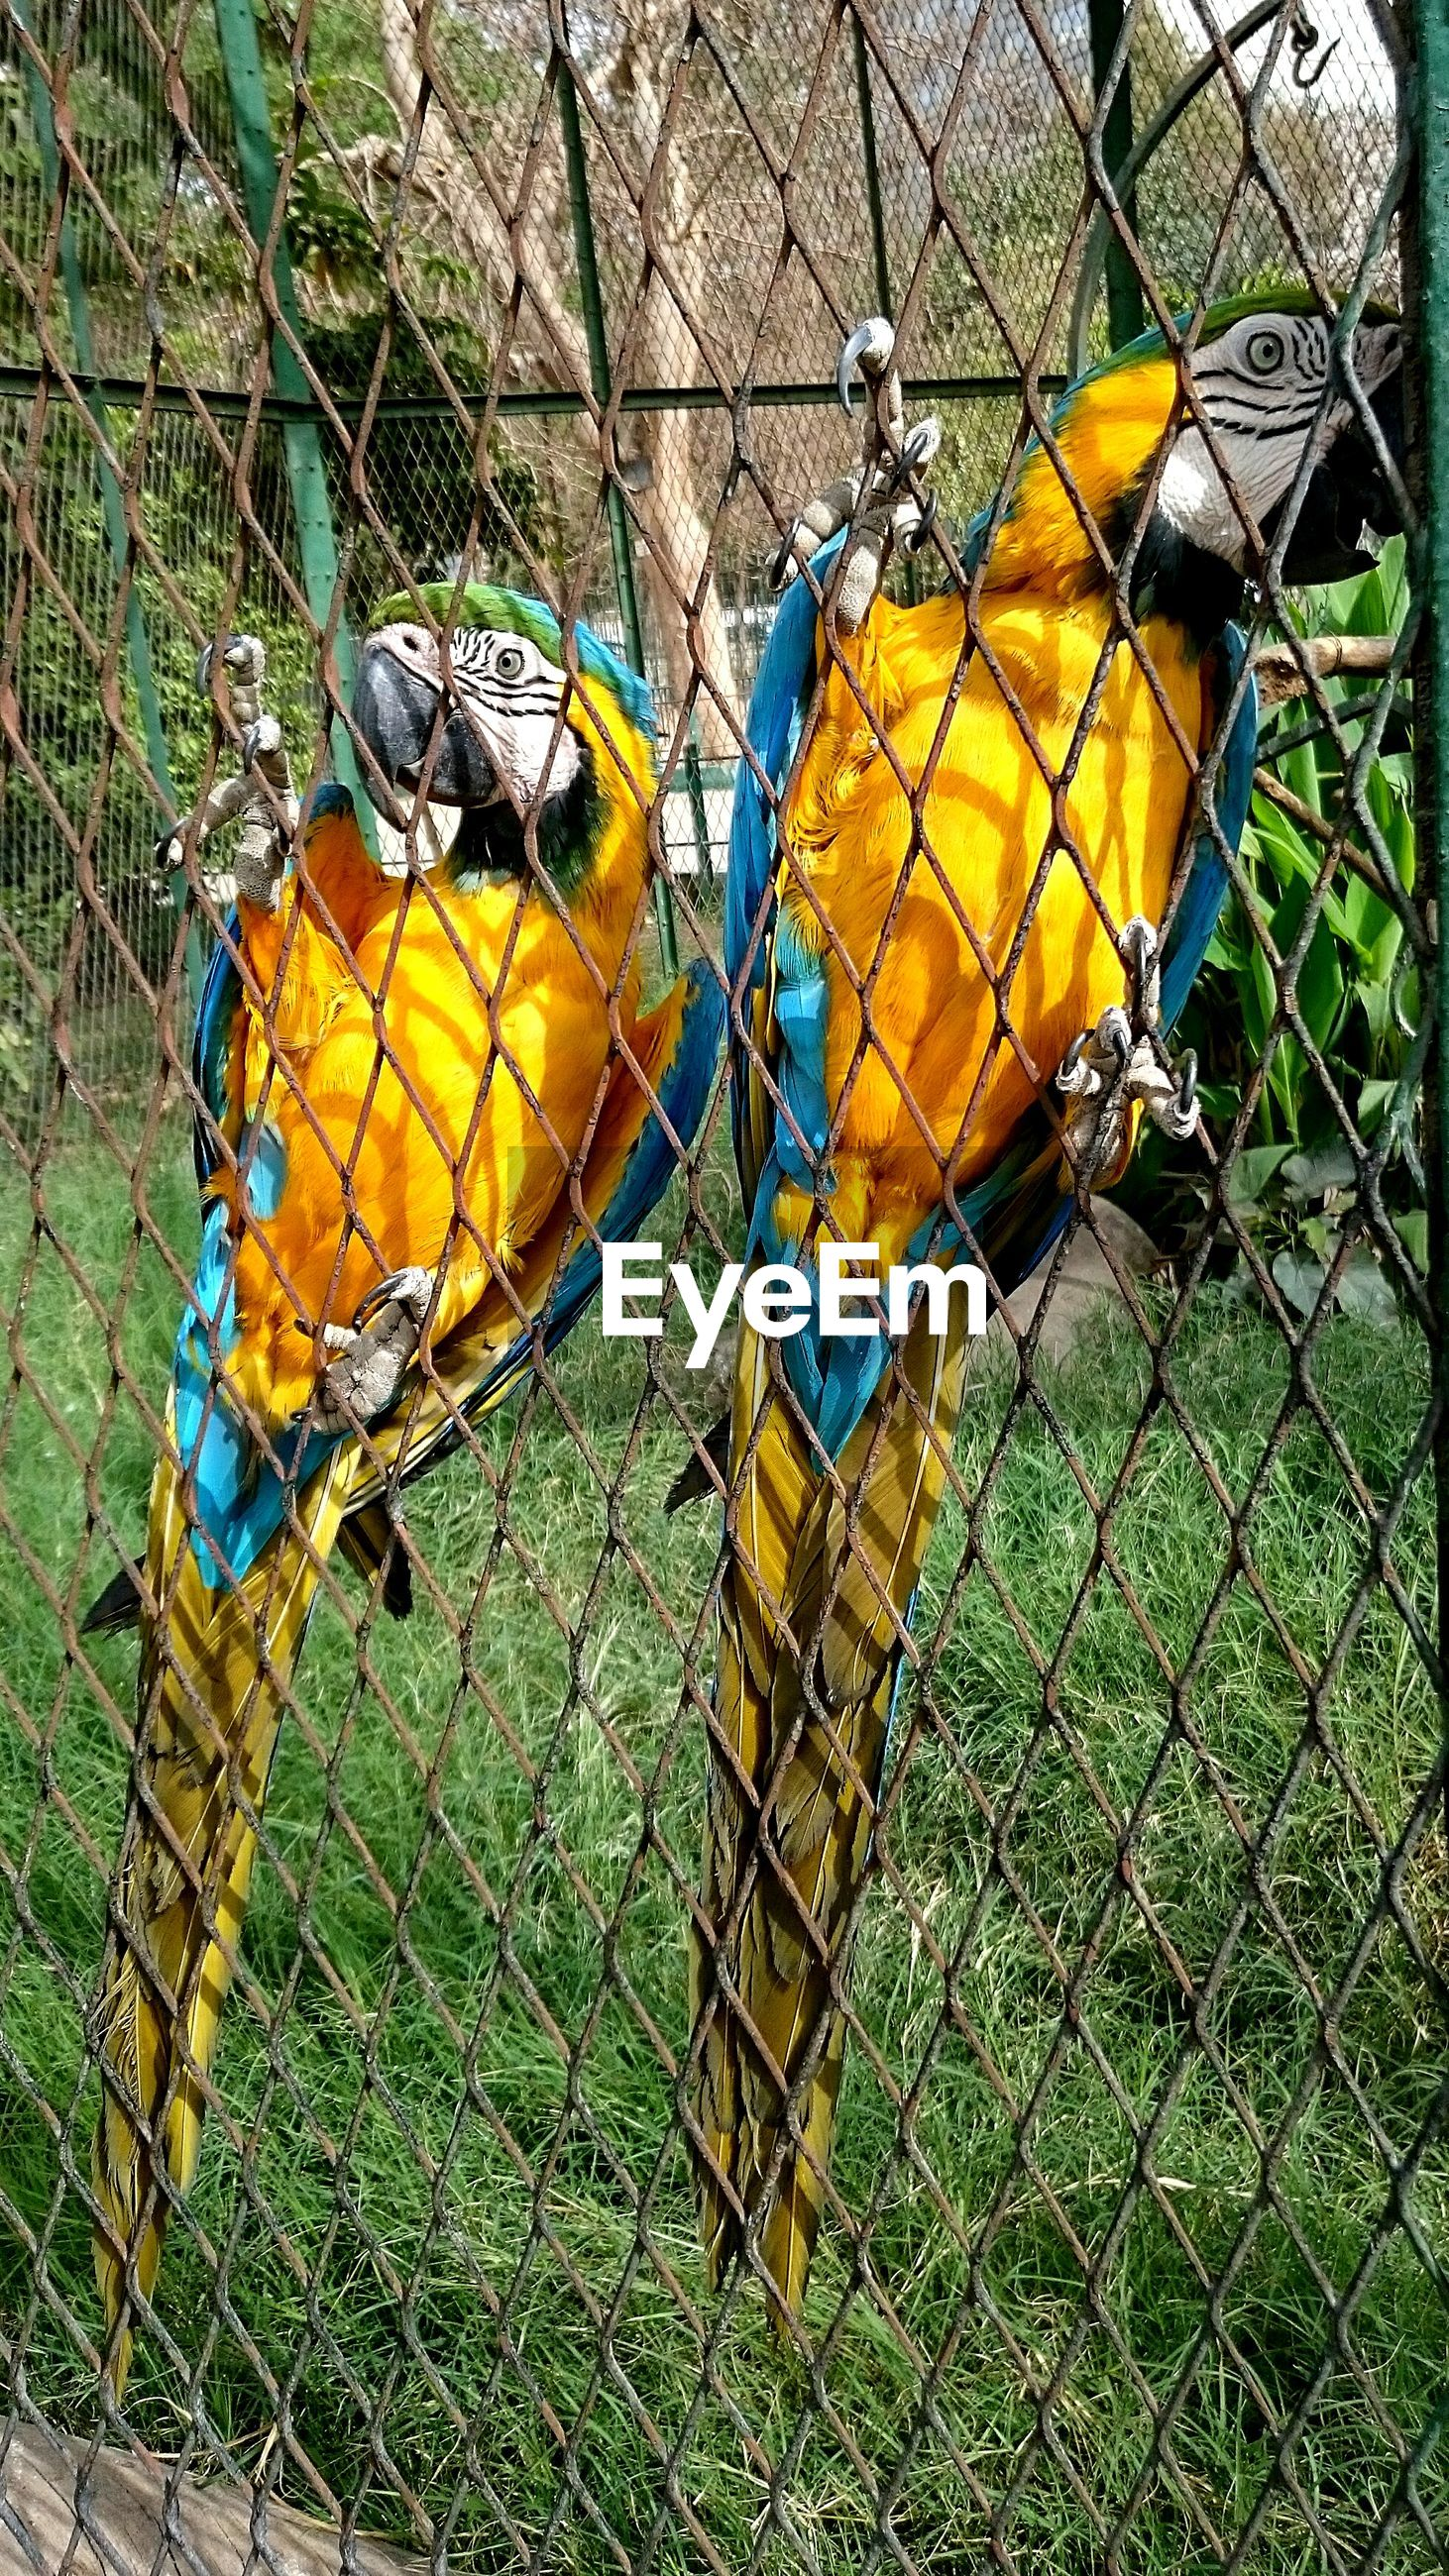 cage, chainlink fence, bird, no people, yellow, metal, animal themes, animals in captivity, outdoors, day, nature, parrot, close-up, multi colored, gold and blue macaw, perching, macaw